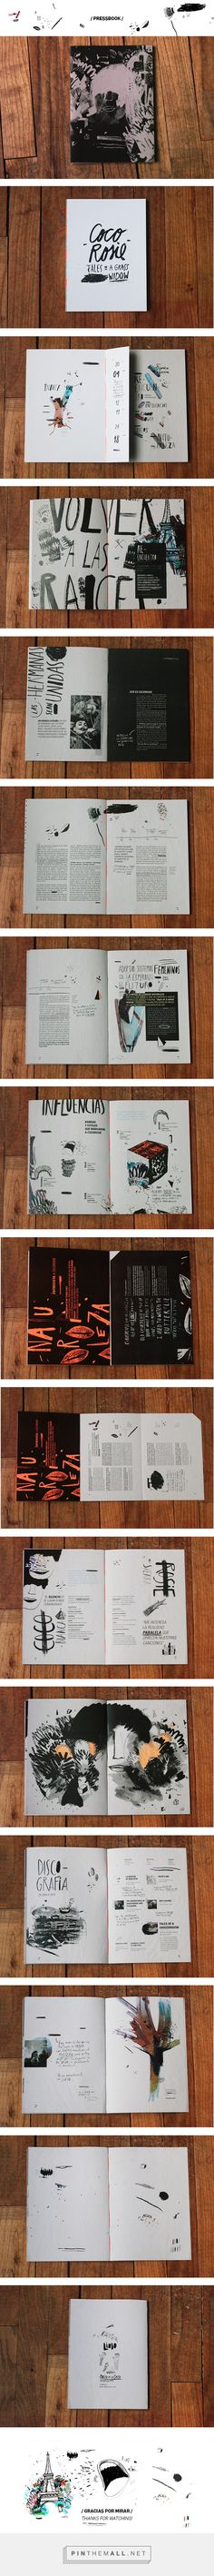 Pressbook / Recital CocoRosie on Behance...